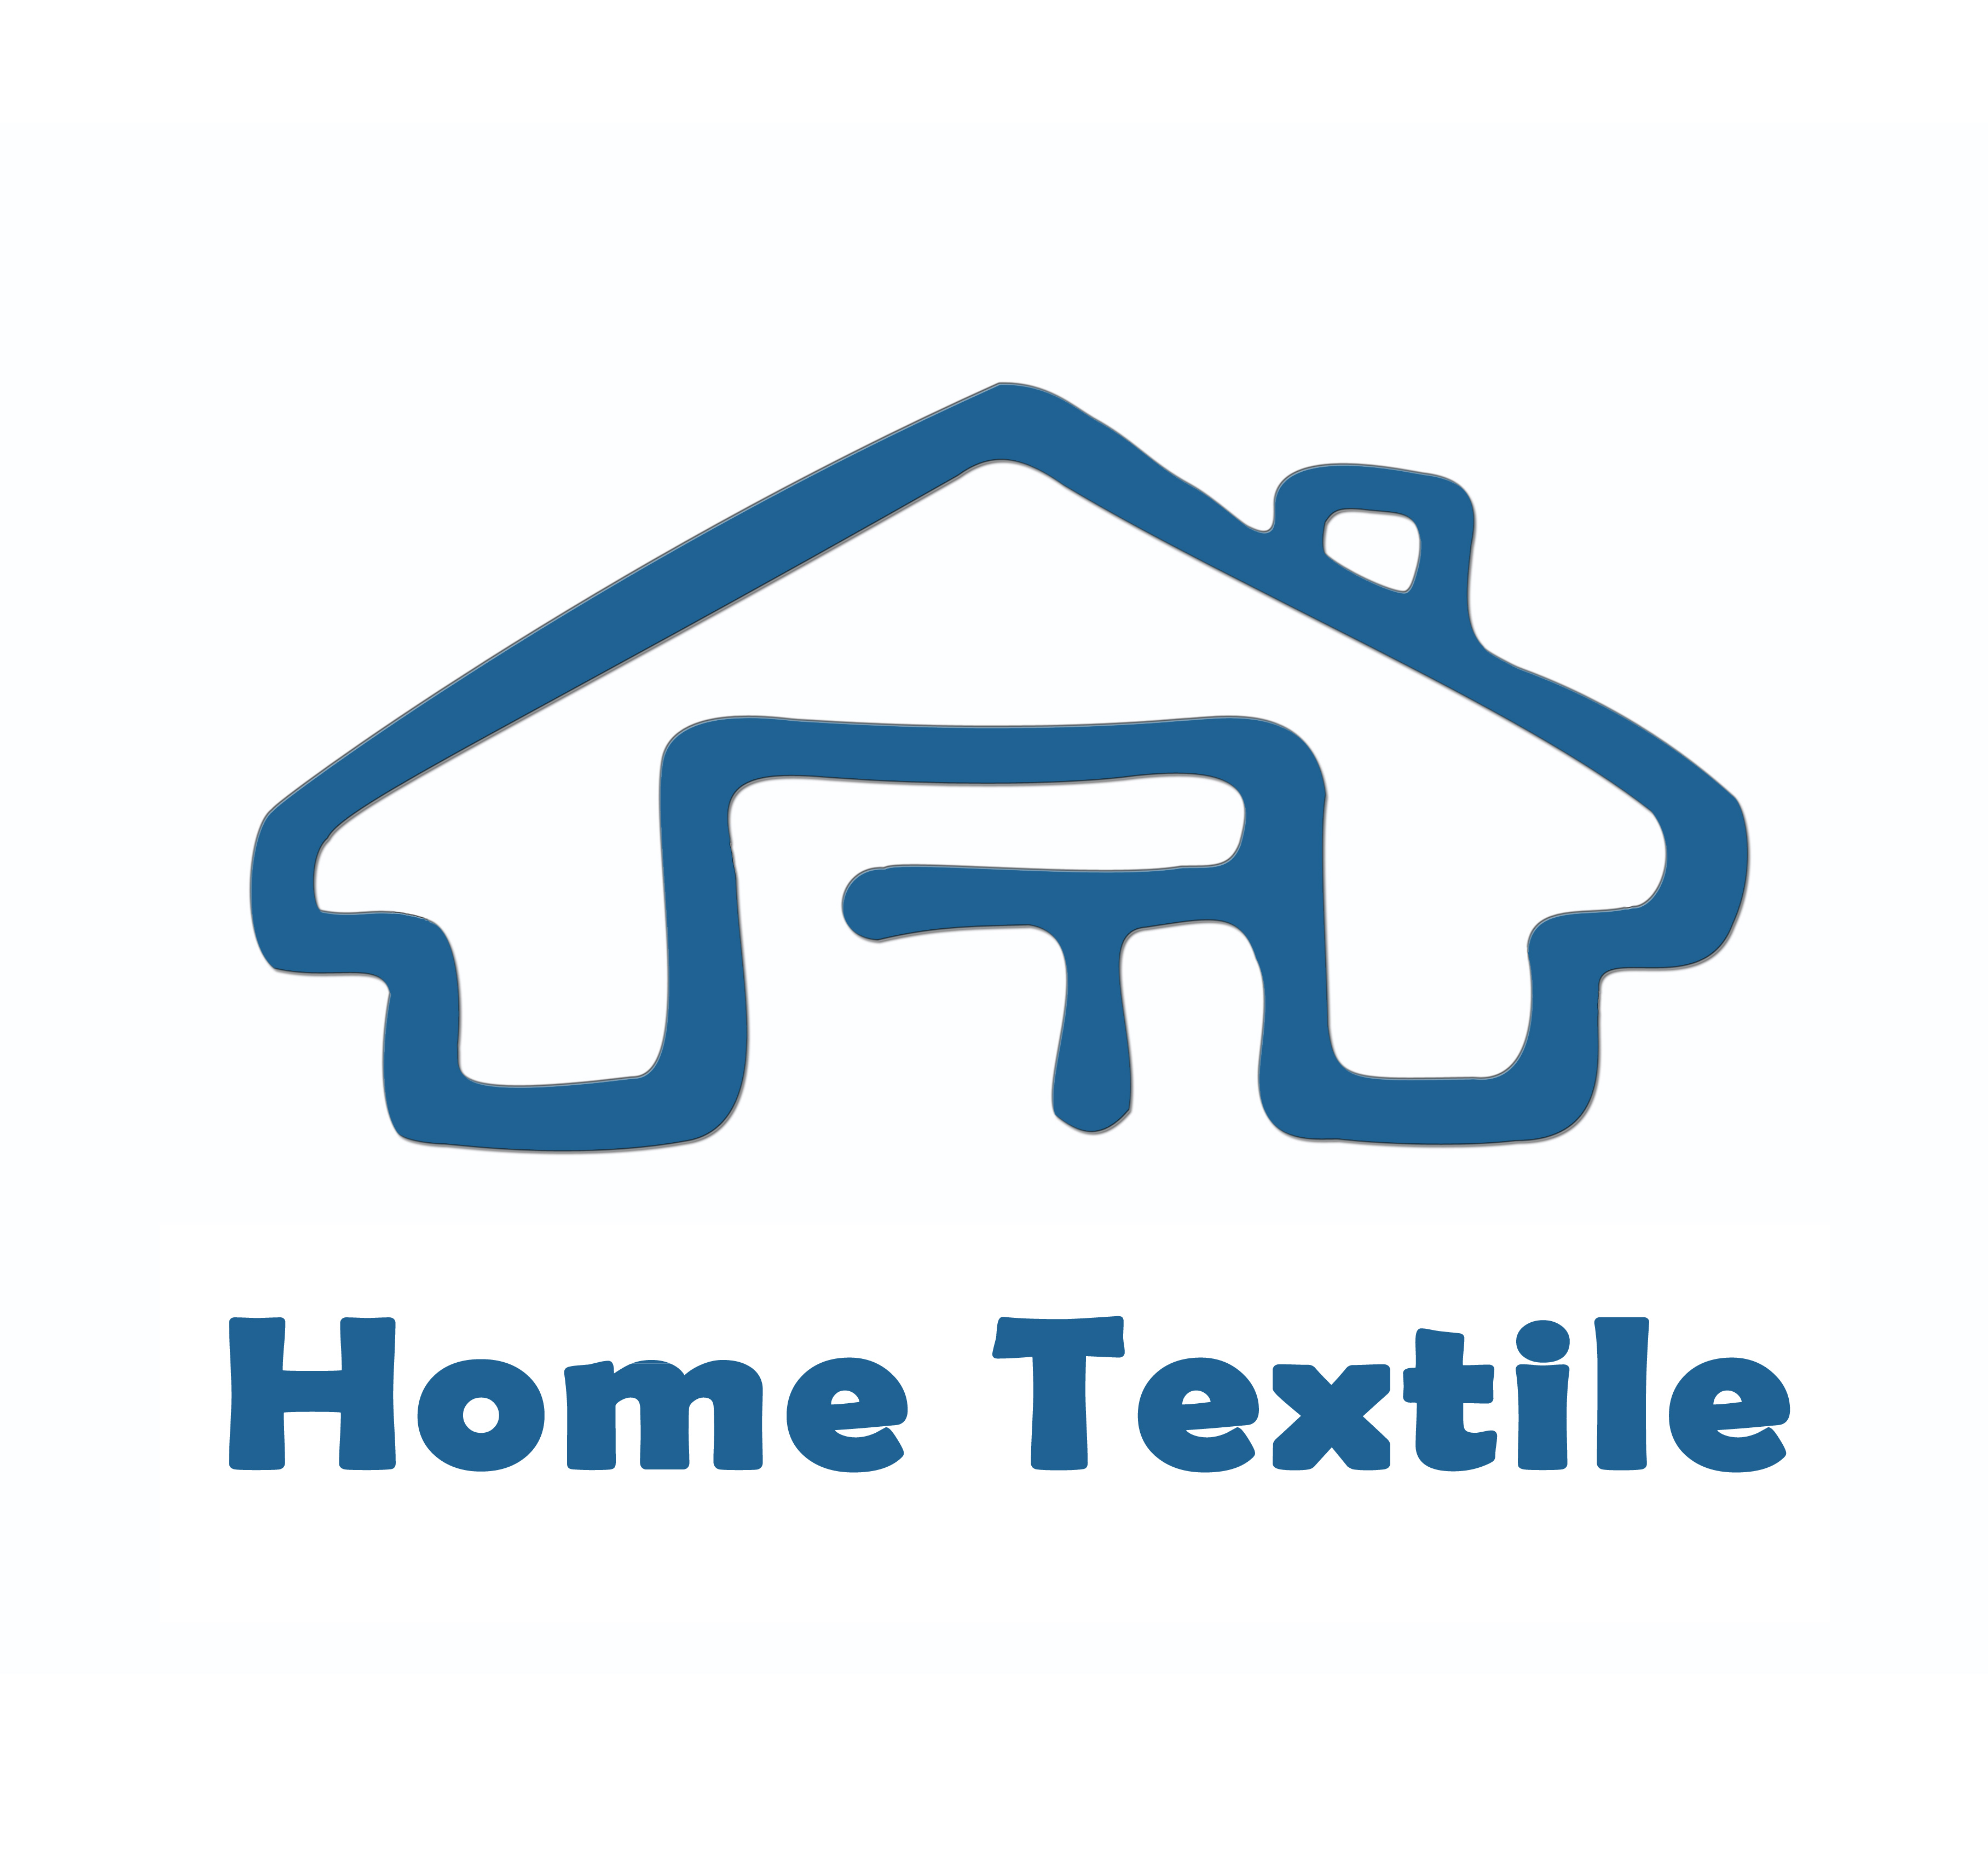 LIUZHOU HOME TEXTILE CO., LTD.